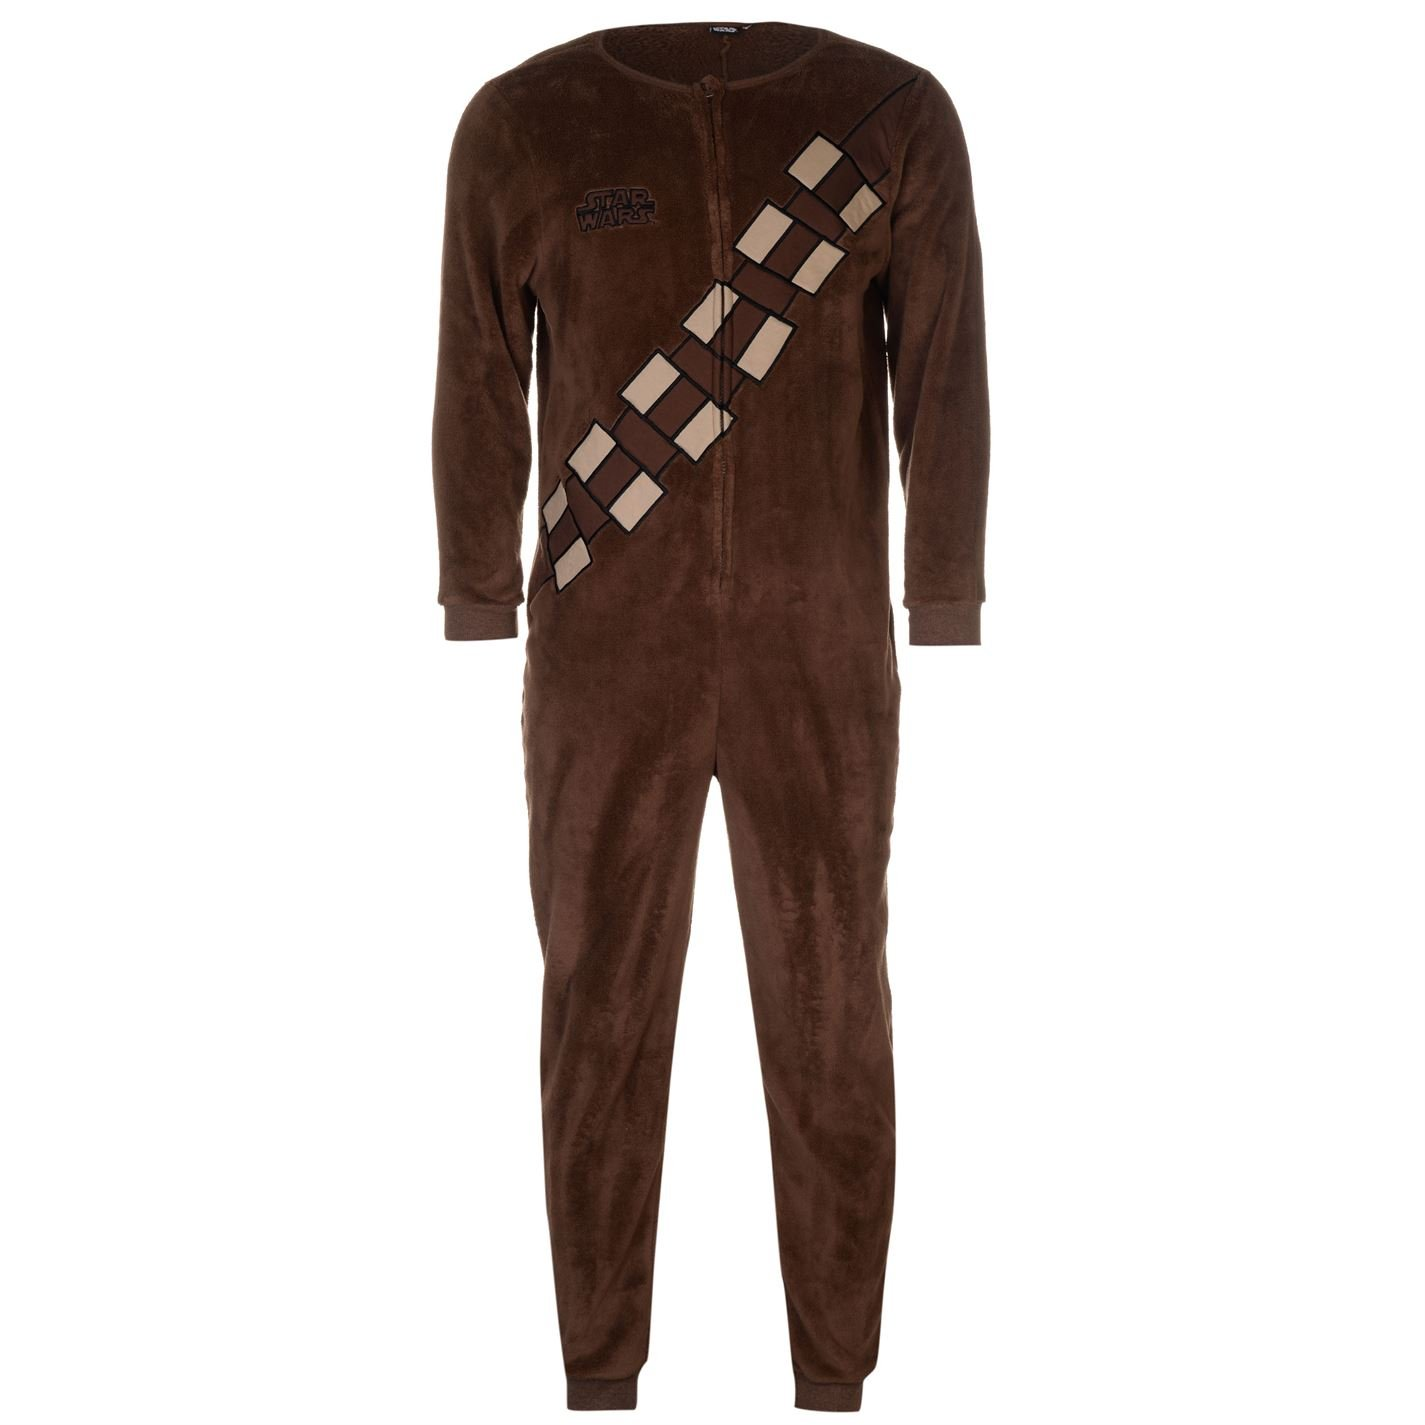 Monopezzo Uomo Star Wars Licensed By Disney